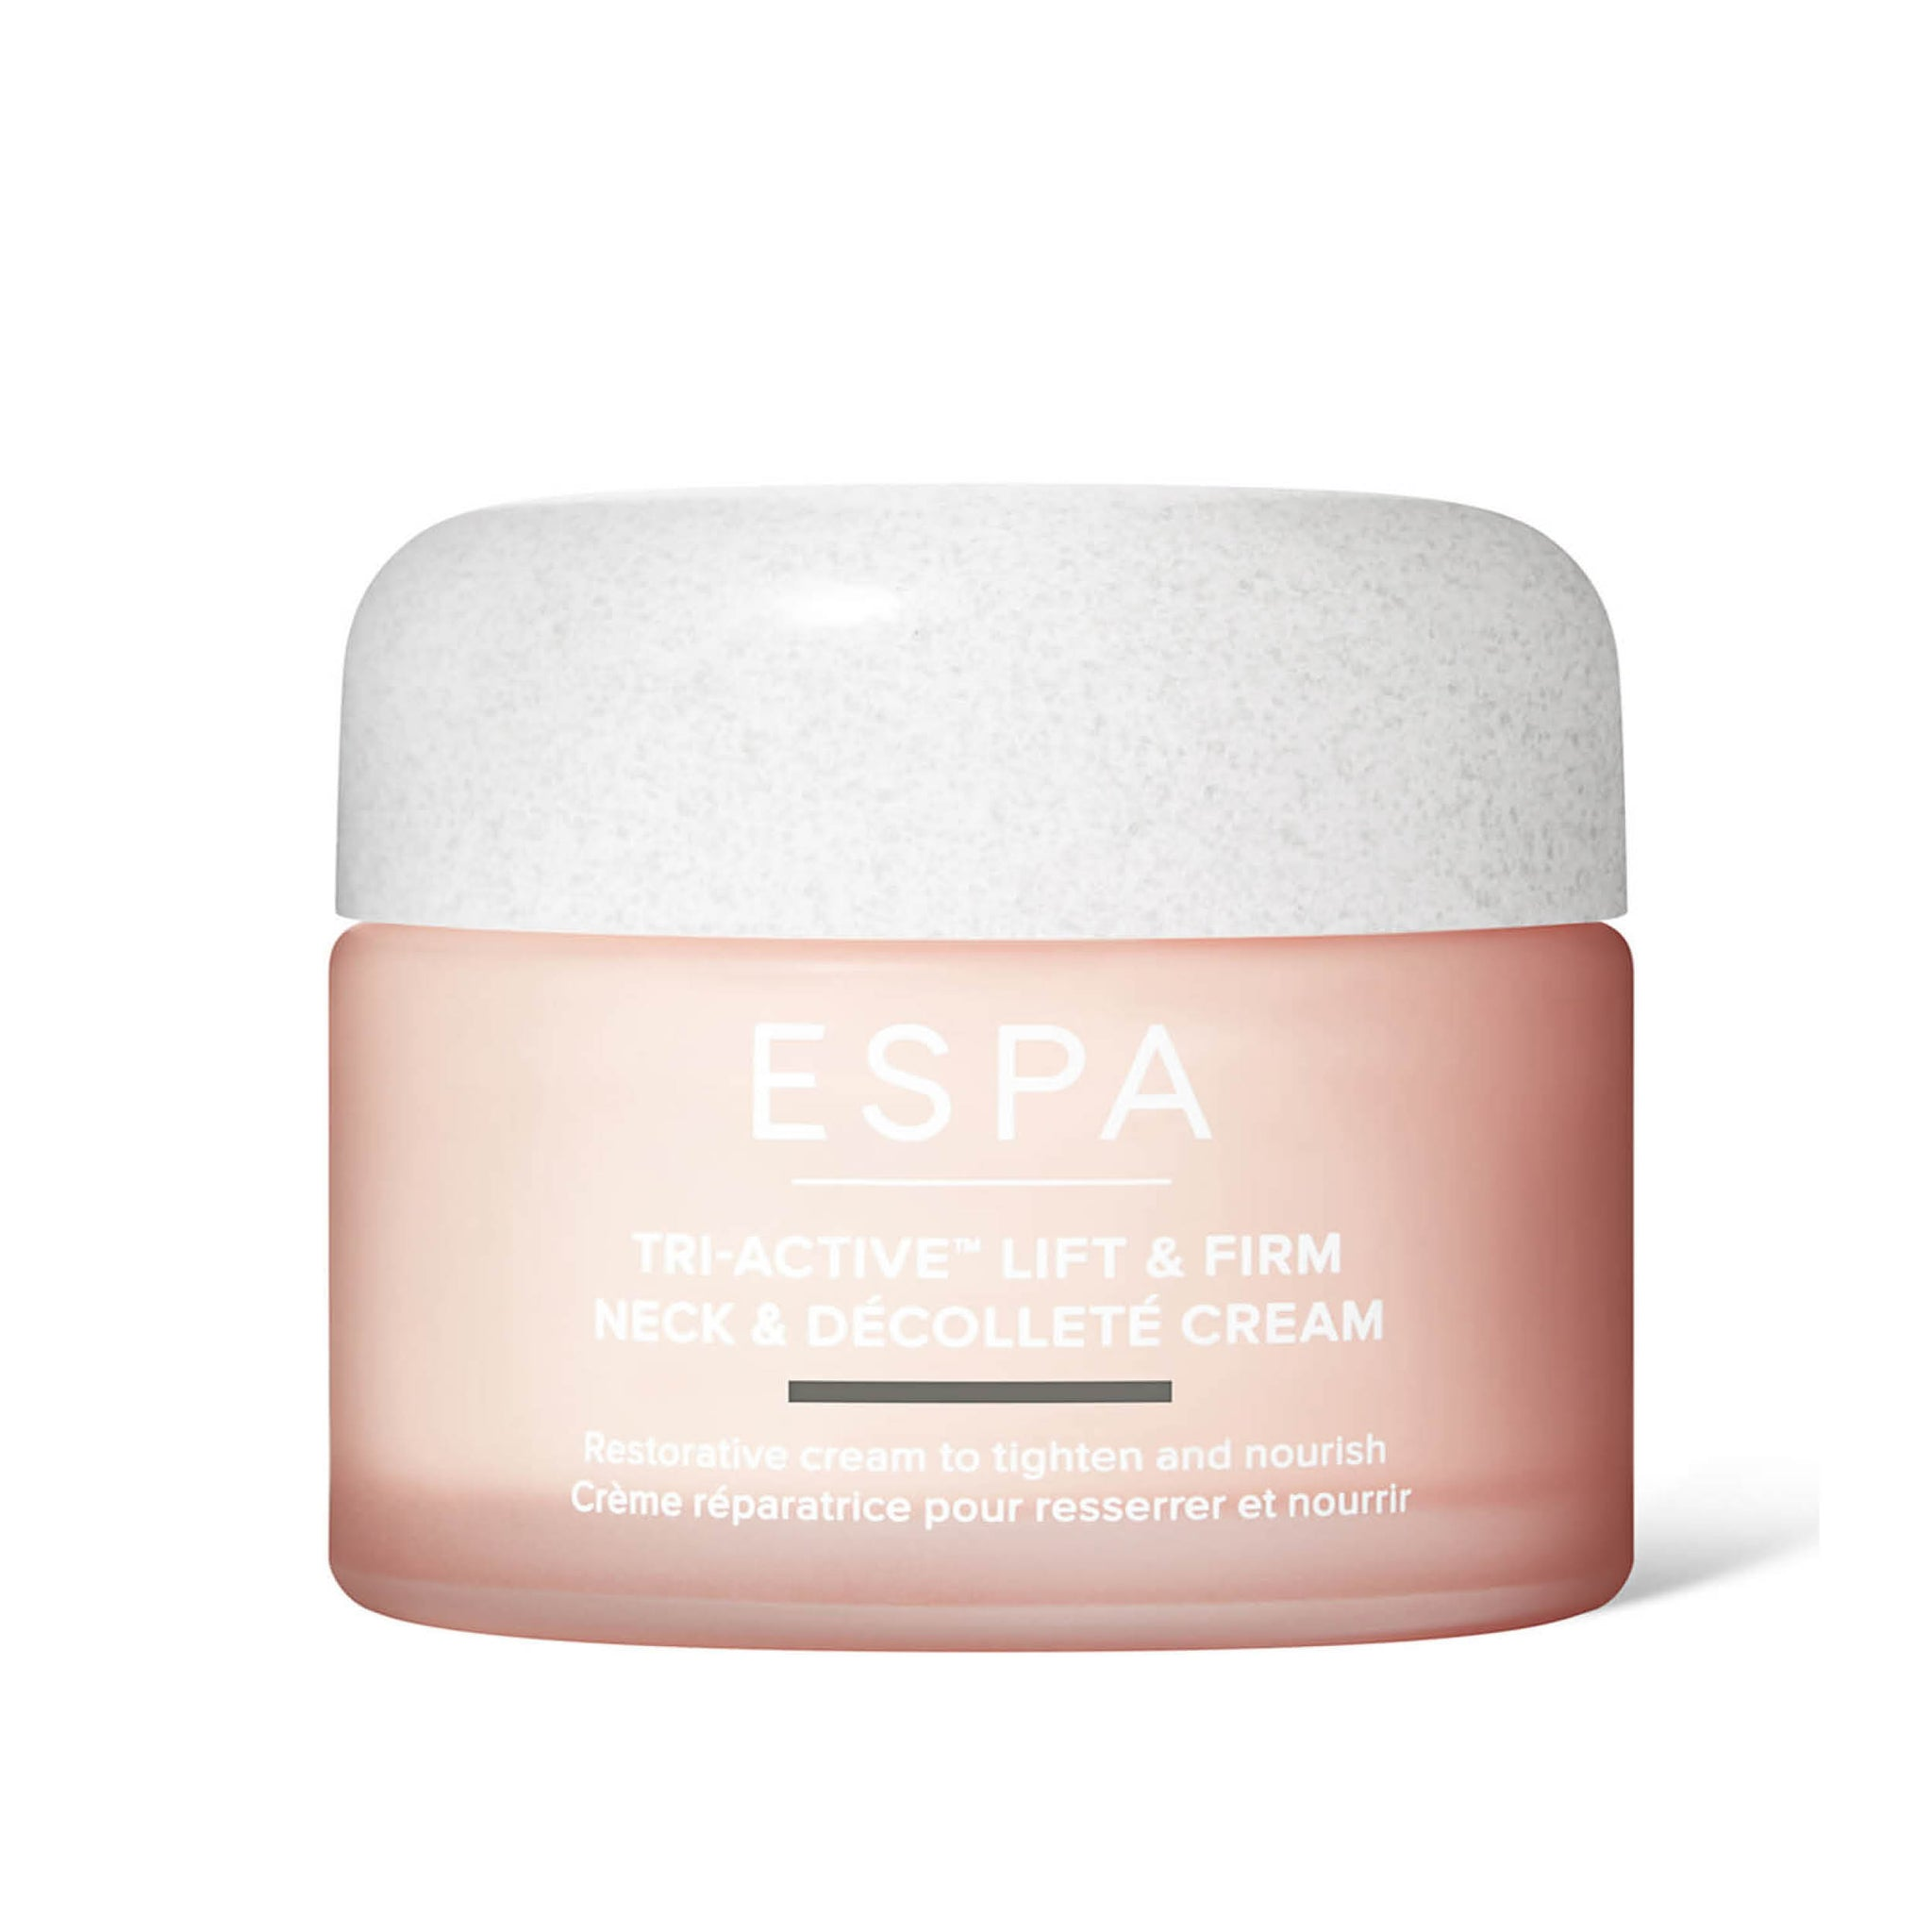 ESPA Tri-Active Lift & Firm Face, Neck and Décolleté Balm